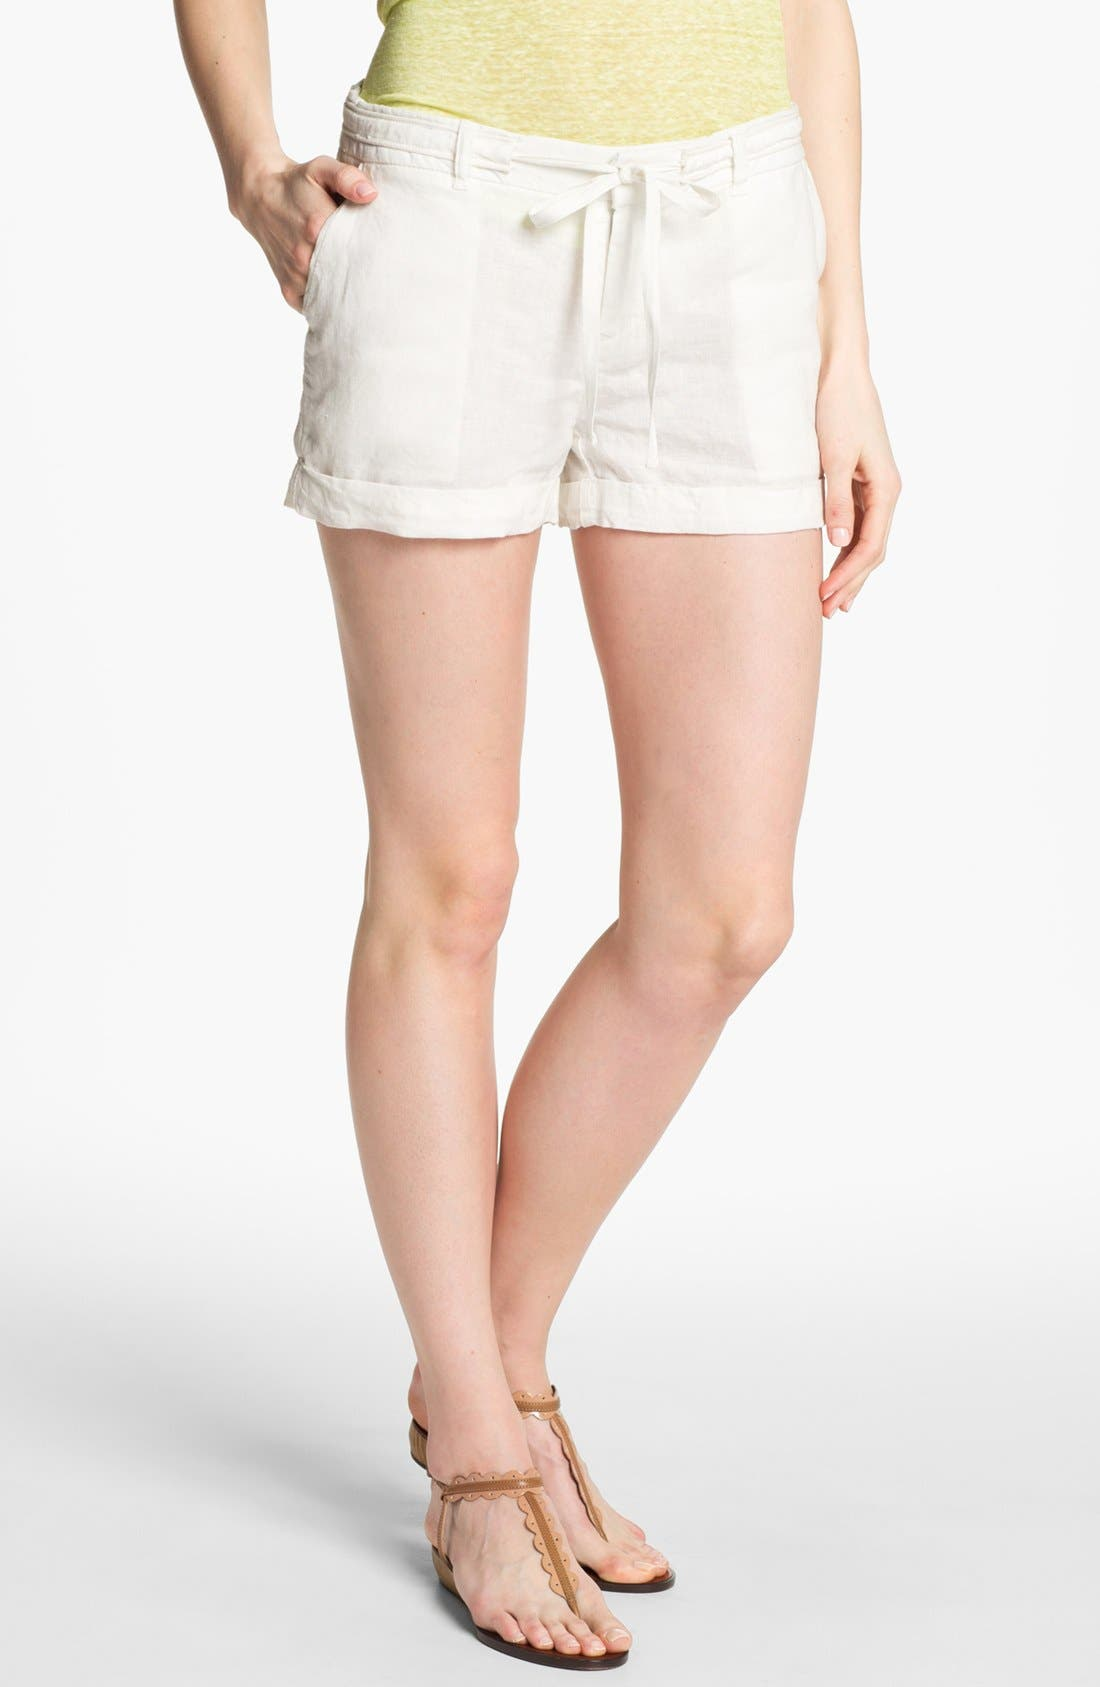 JOIE 'Jewell' Linen Shorts, Main, color, 114